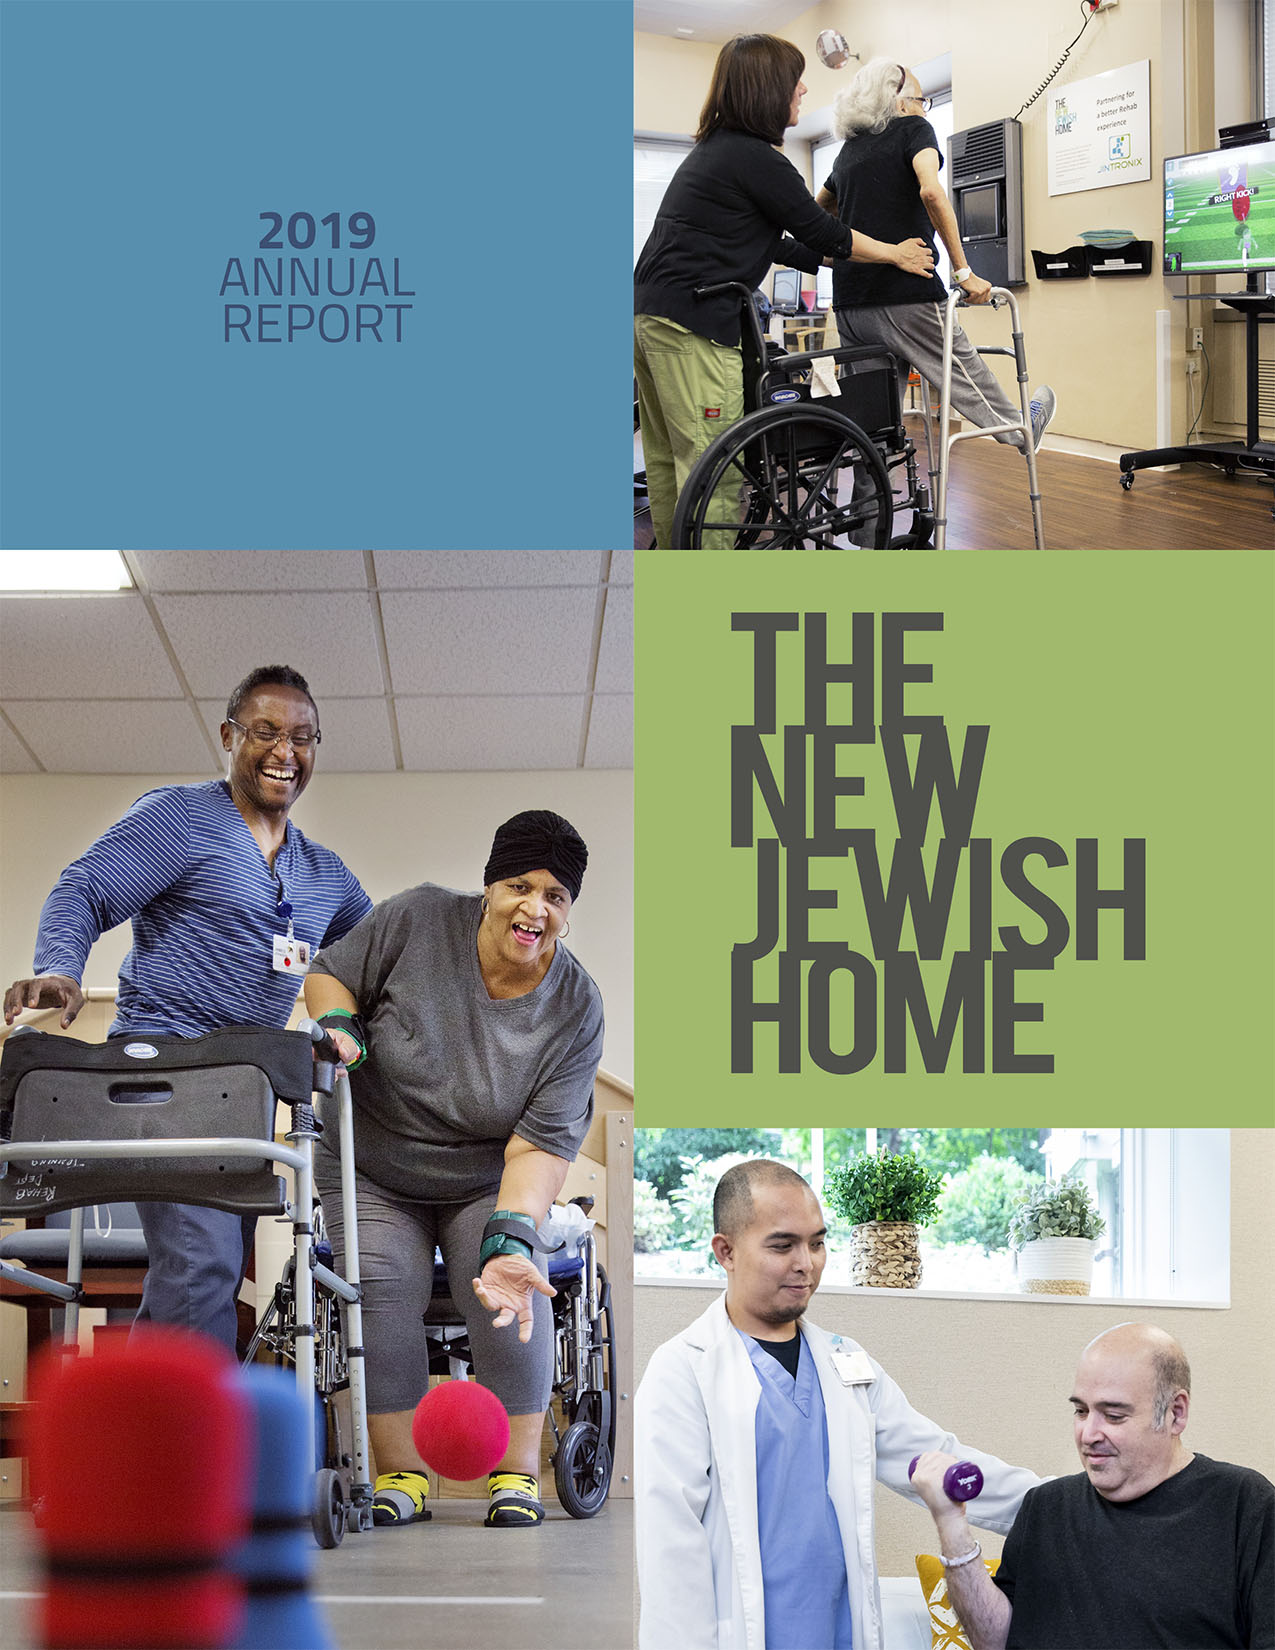 Image of the cover of New Jewish Home 2019 Annual Report